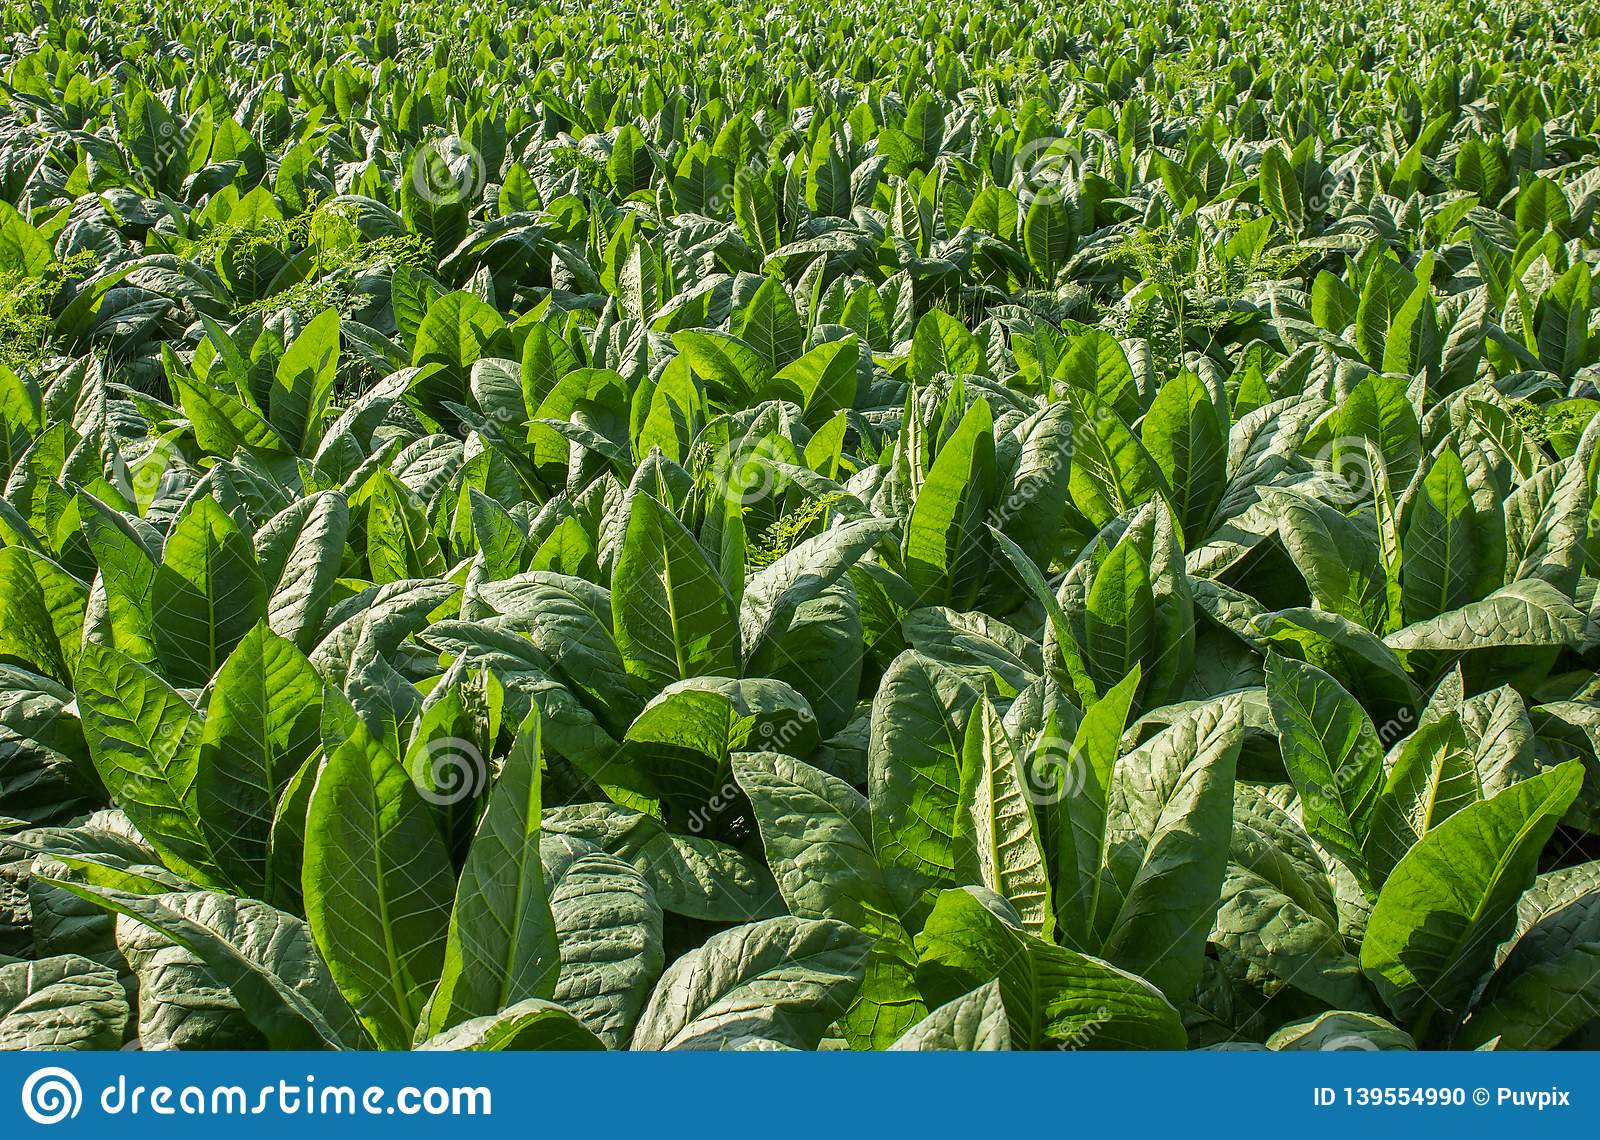 Tobacco green field close up